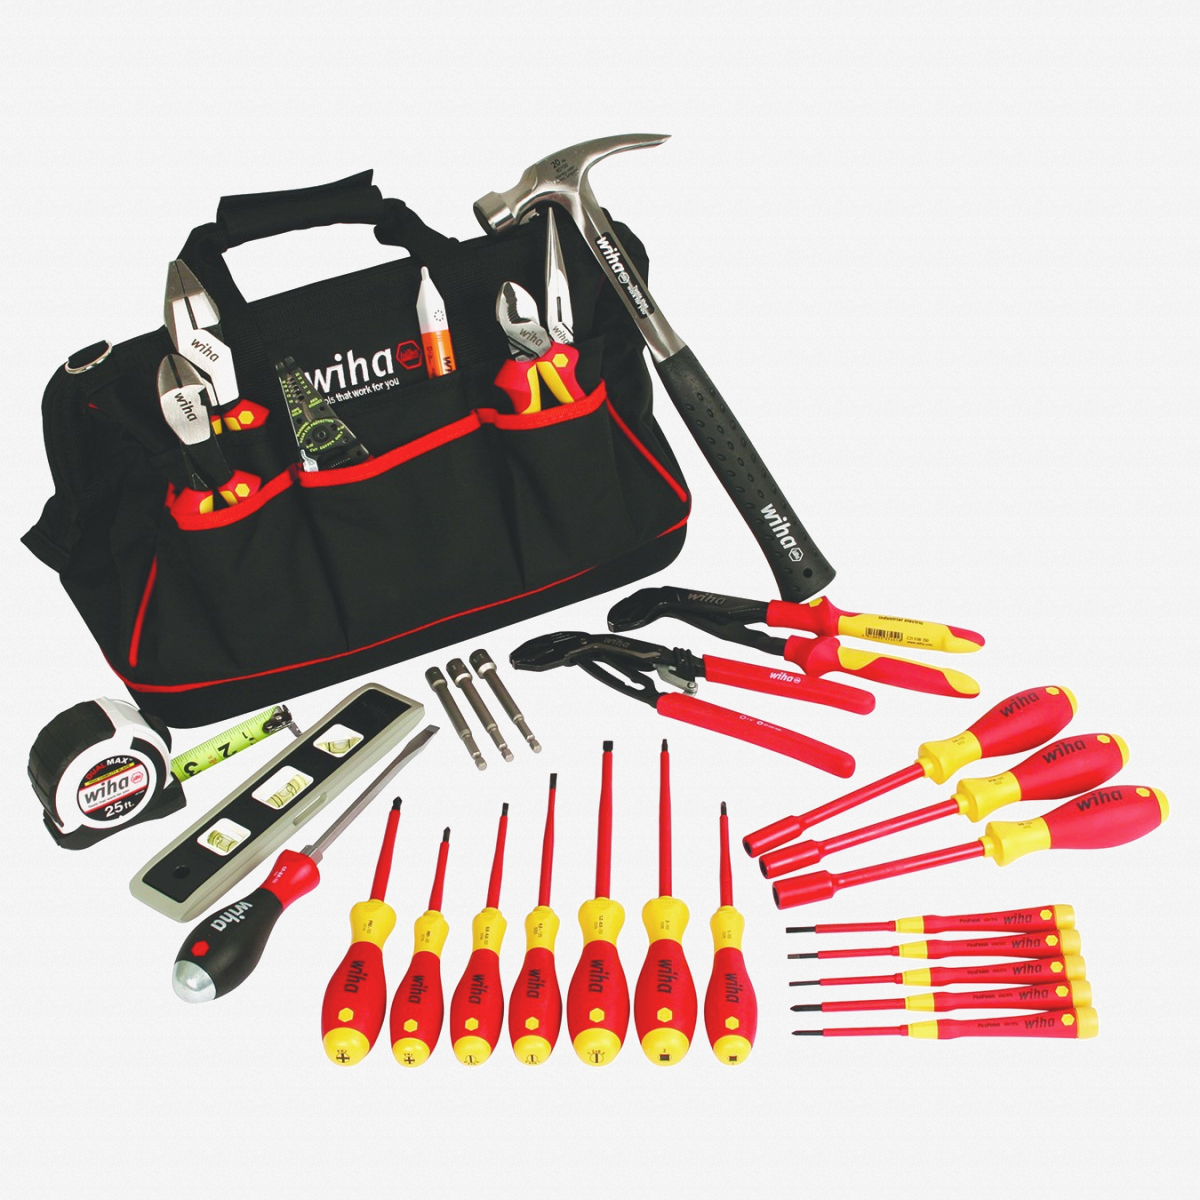 Wiha 32935 Journeyman's Tool Set, 30 pcs - KC Tool